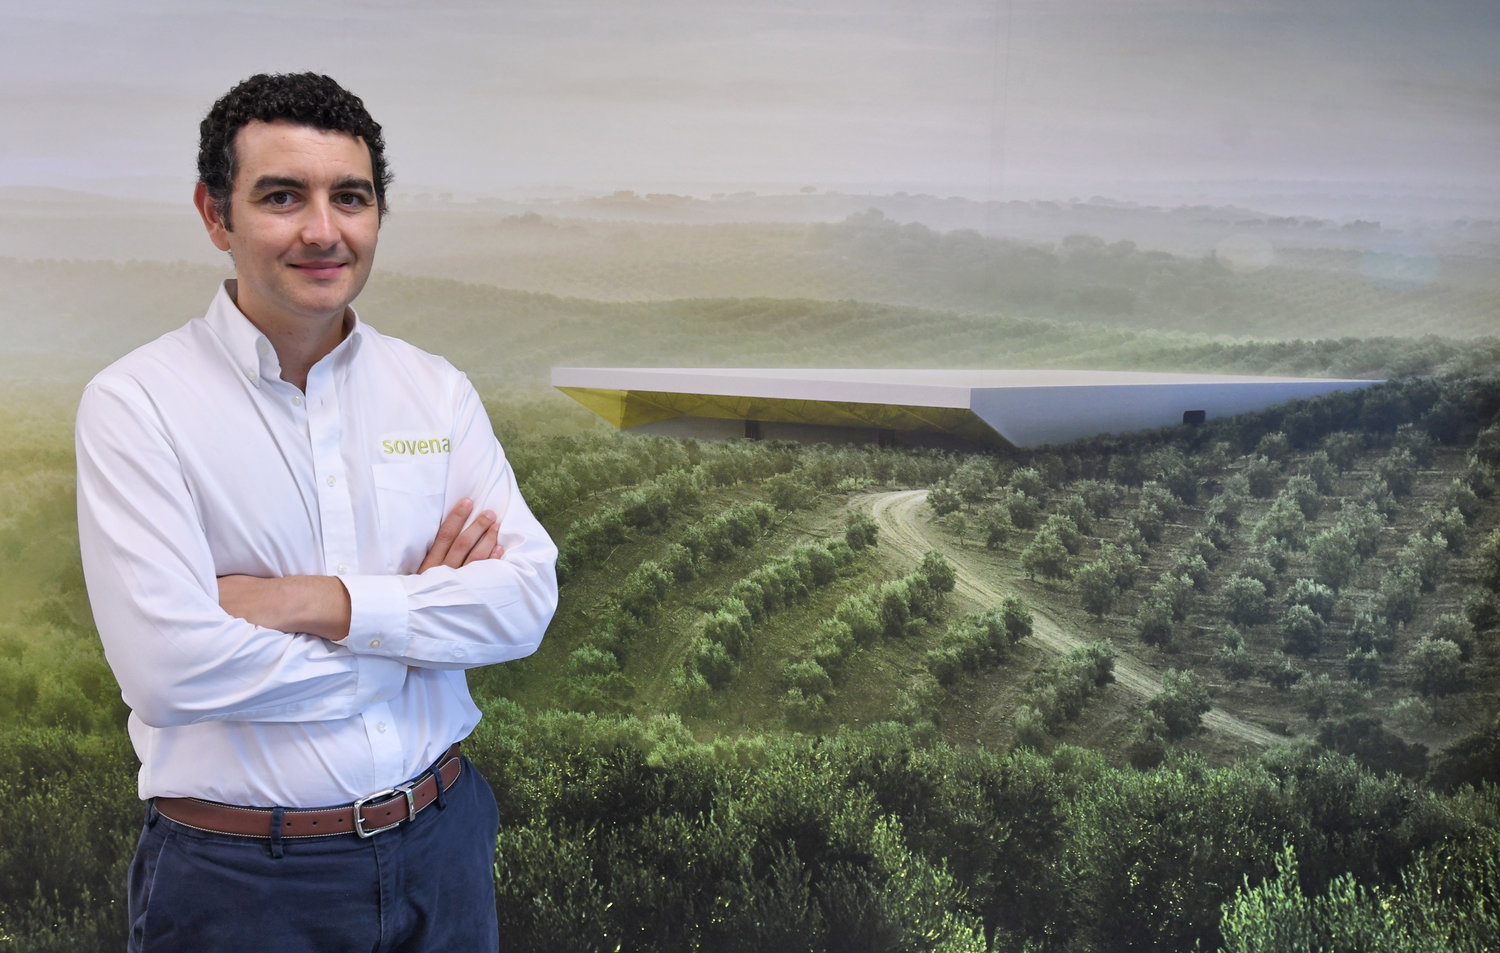 ROOTS OF SUCCESS — Sovena USA Inc. Managing Director Jorge Pena stands in front of an image at the company's Griffiss business park facility that shows an olive oil farm and state-of-the-art olive oil mill in Portugal that is owned by the parent Sovena Group in this file photo. Sovena received the gold medal in the Light Green Fruity category in the Mario Solinas Quality Award competition, organized by the International Olive Council and considered the most prestigious olive oil contest in the world, according to the company.